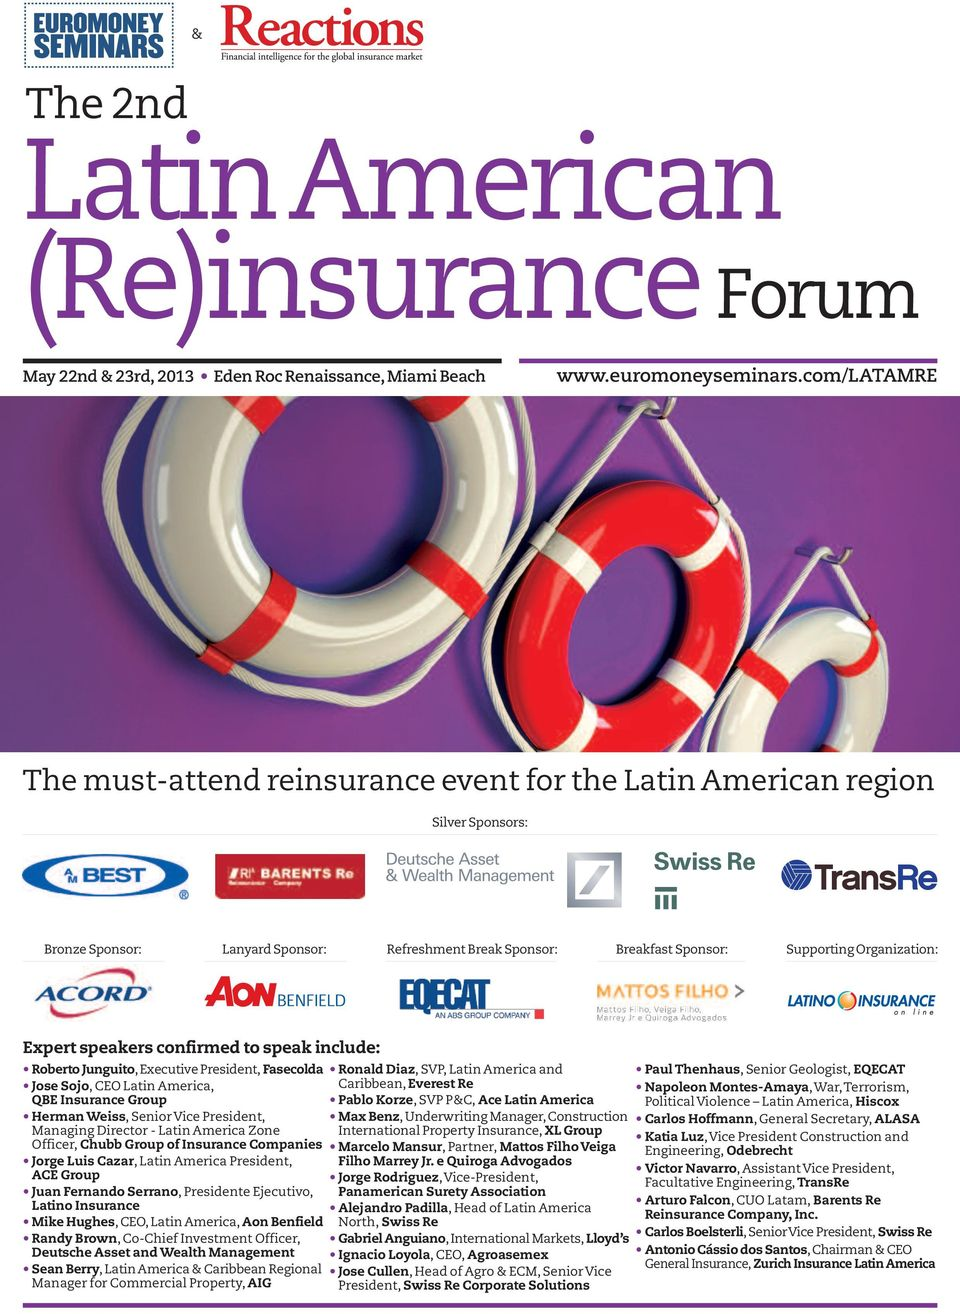 Latin America, QBE Insurance Group Herman Weiss, SeniorVice President, Managing Director - Latin America Zone Officer, Chubb Group of Insurance Companies Jorge Luis Cazar, Latin America President,